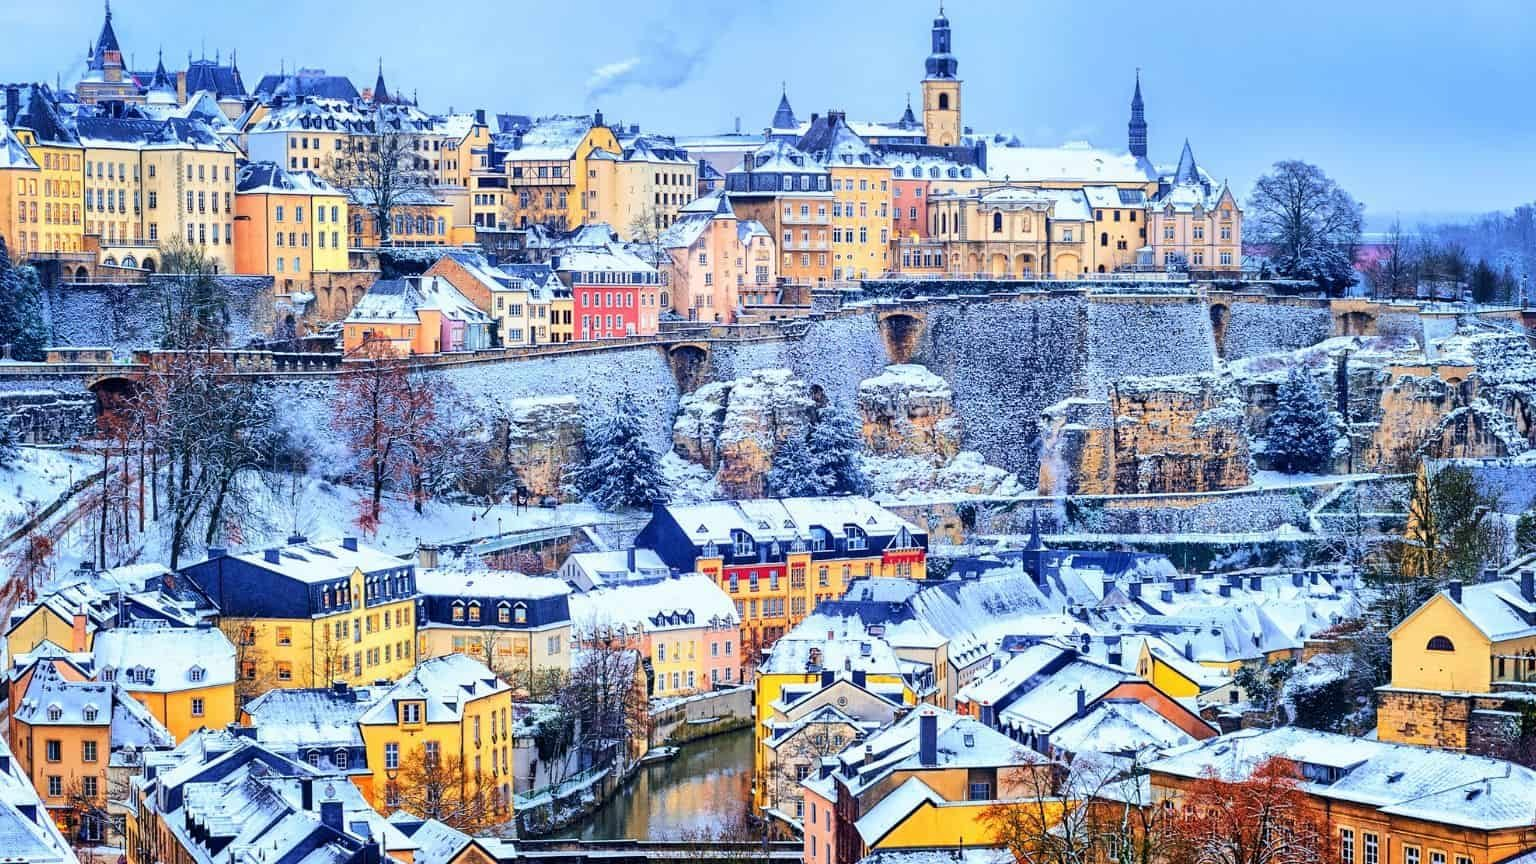 Luxembourg city in snow